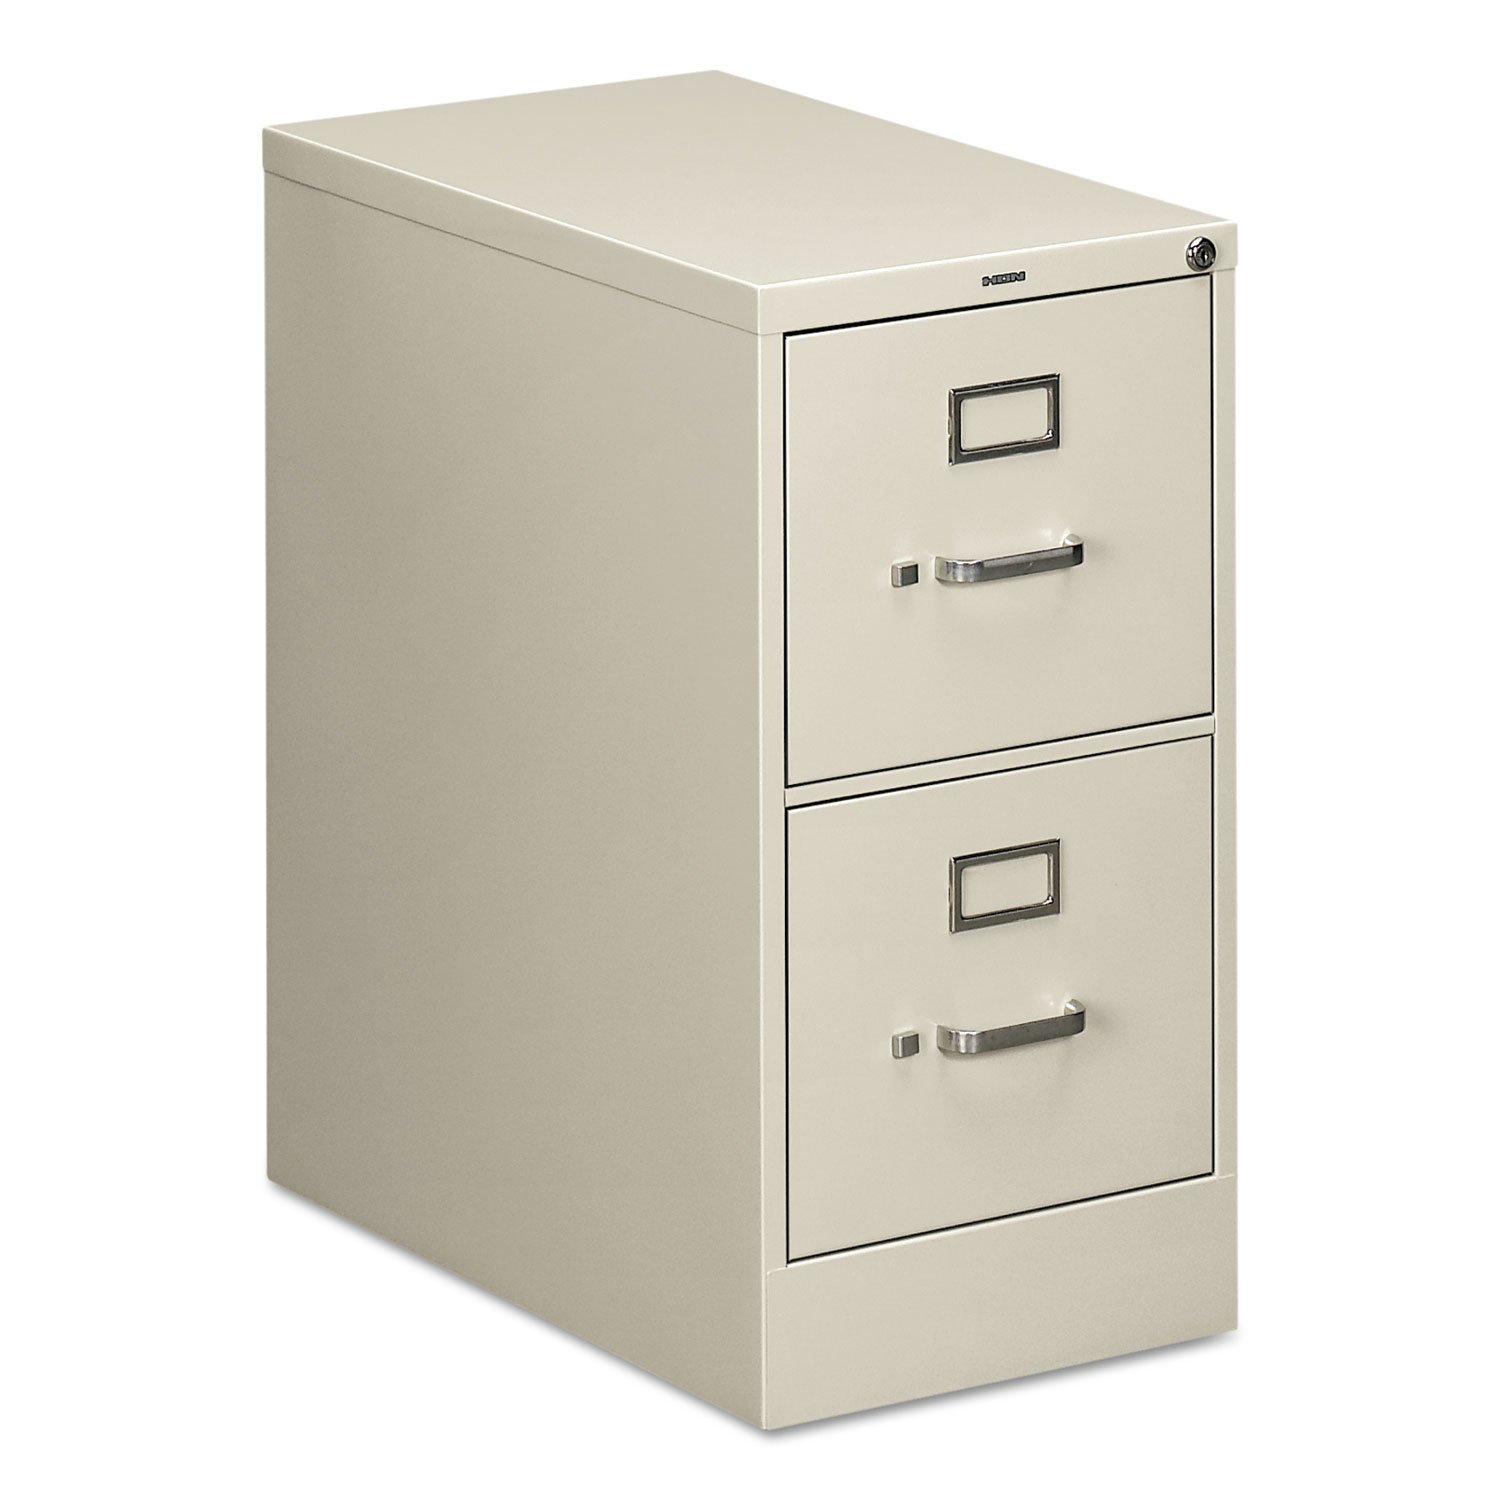 HON512PQ - 510 Series Two-Drawer Full-Suspension File by HON